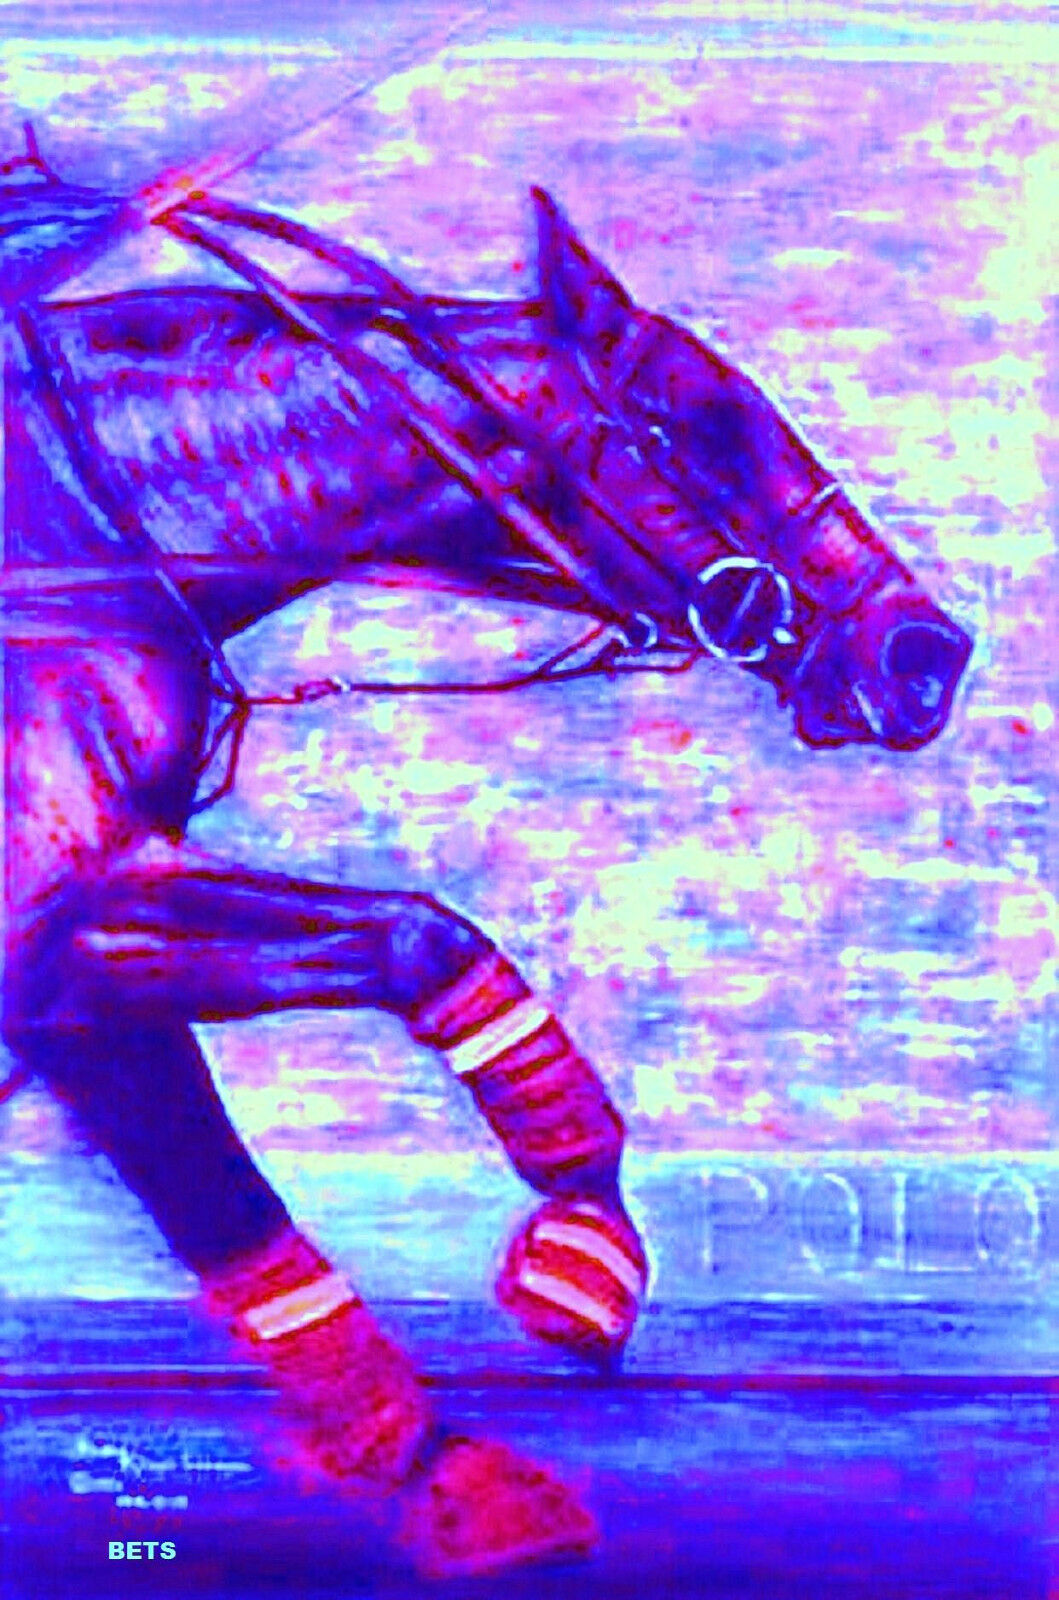 HORSE PRINT Giclee Polo Art BREAKAWAY by artist BETS 5 ColoreeeS print Dimensione 14 X 19